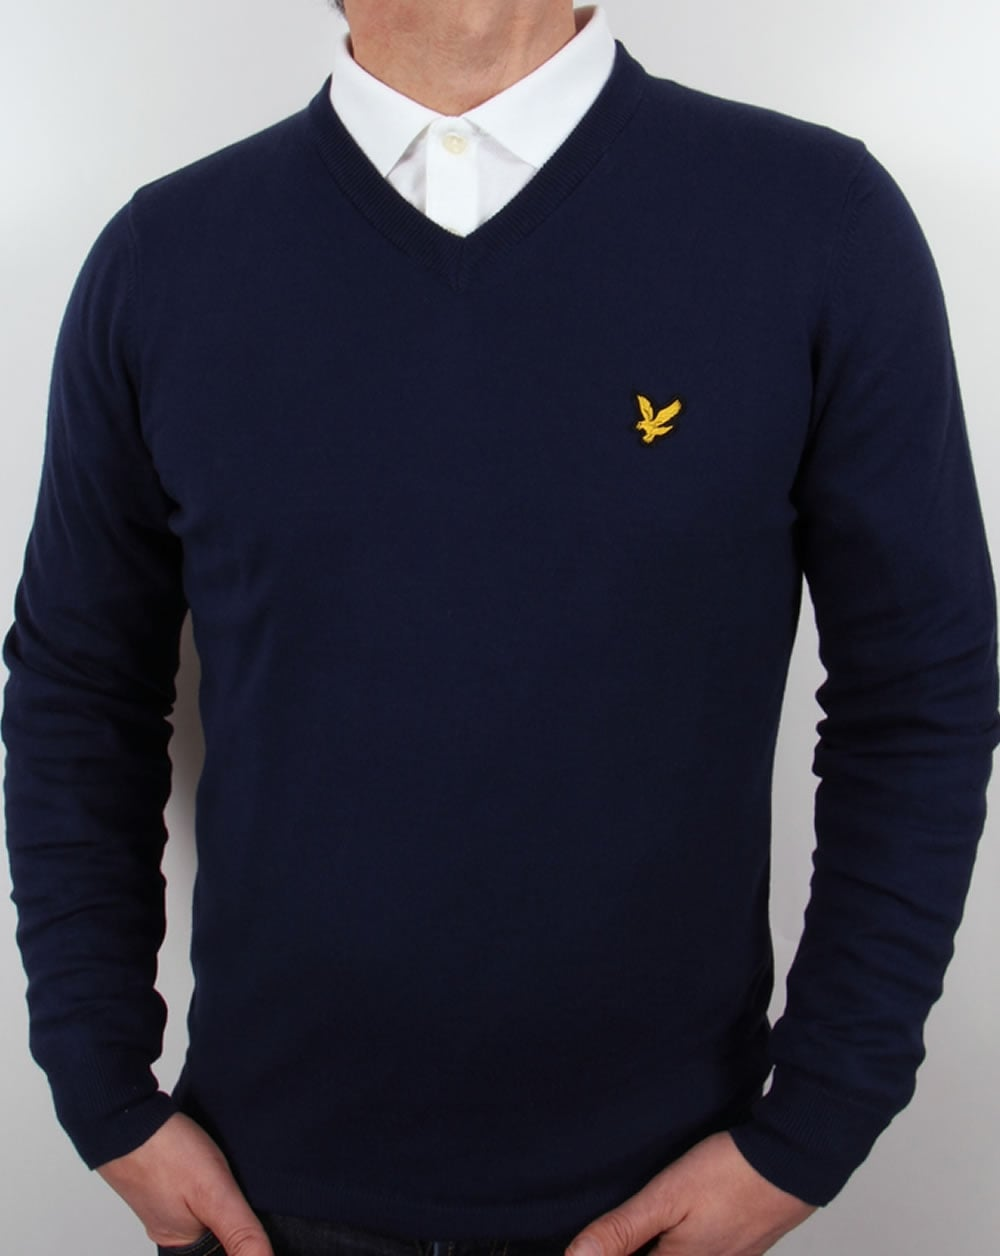 lyle and scott v neck jumper new navy lyle and scott. Black Bedroom Furniture Sets. Home Design Ideas